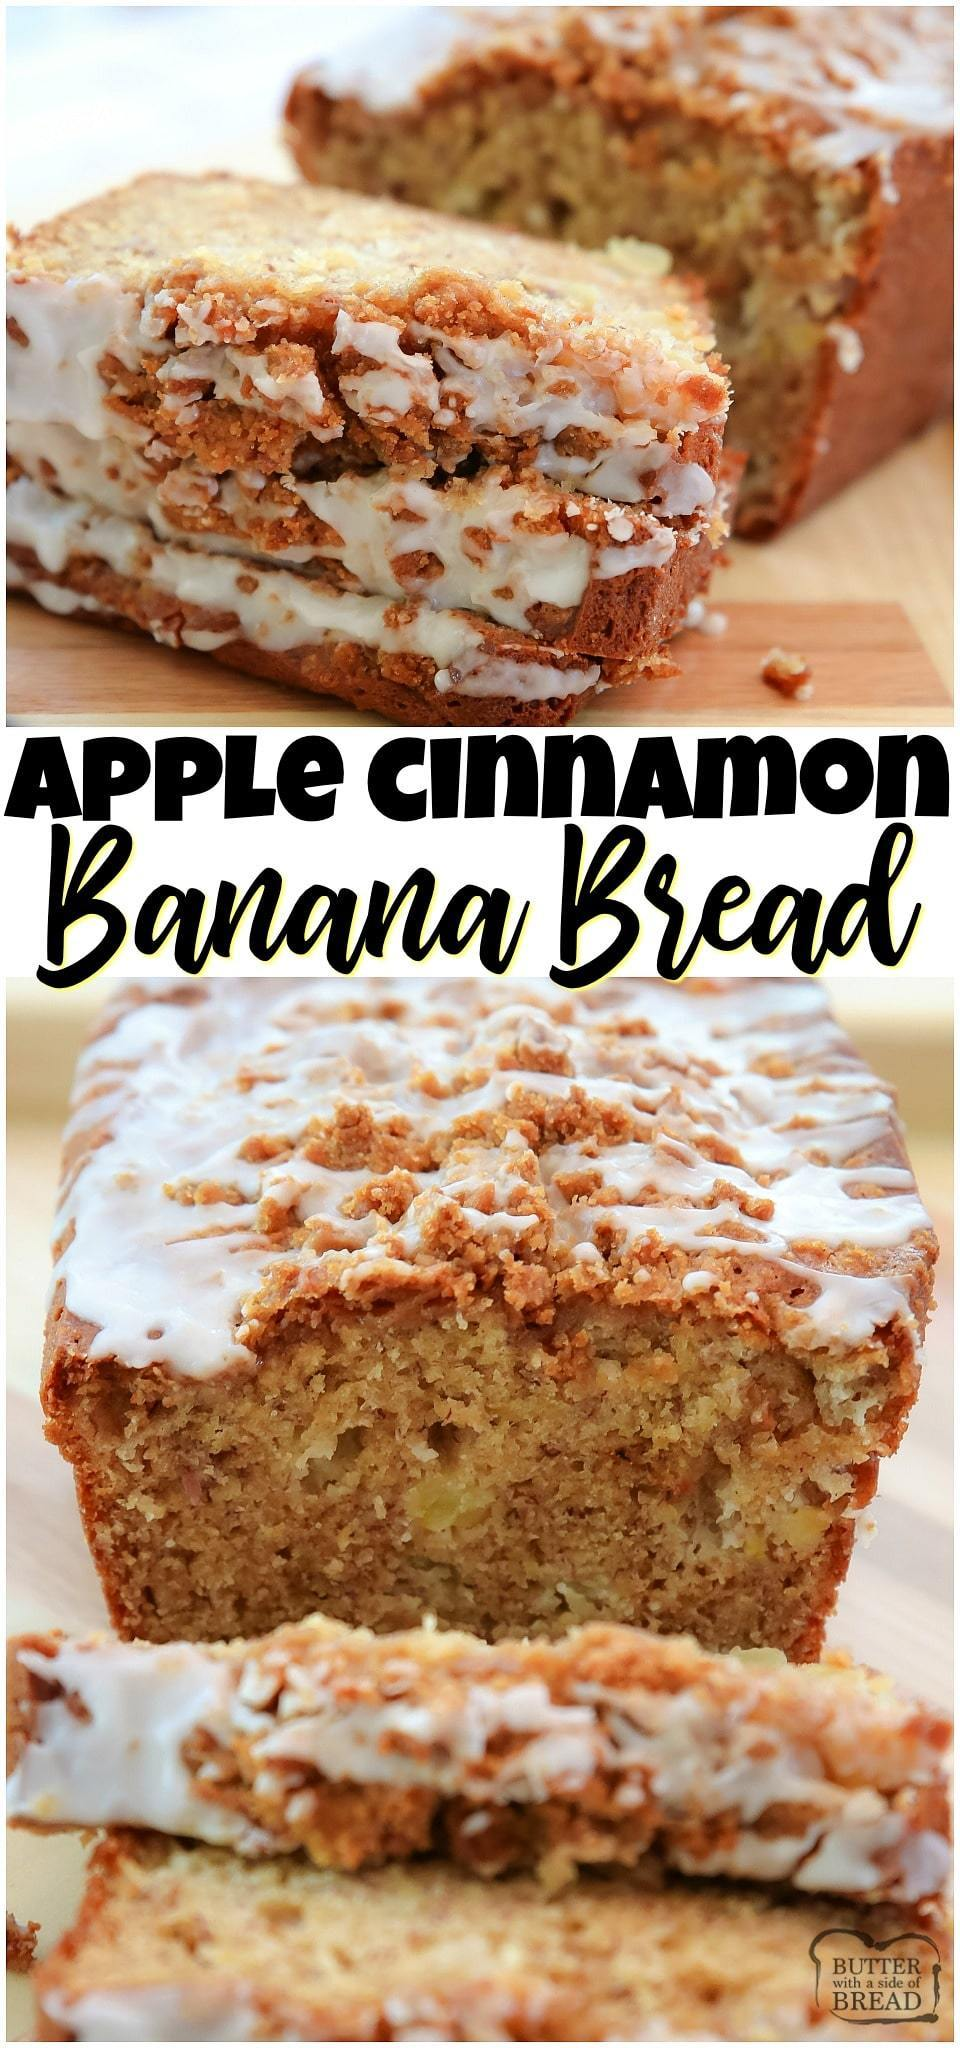 Apple Banana Bread made with ripe bananas and diced sweet apple, topped with a cinnamon streusel and drizzled with icing. Our favorite banana bread recipe ever!